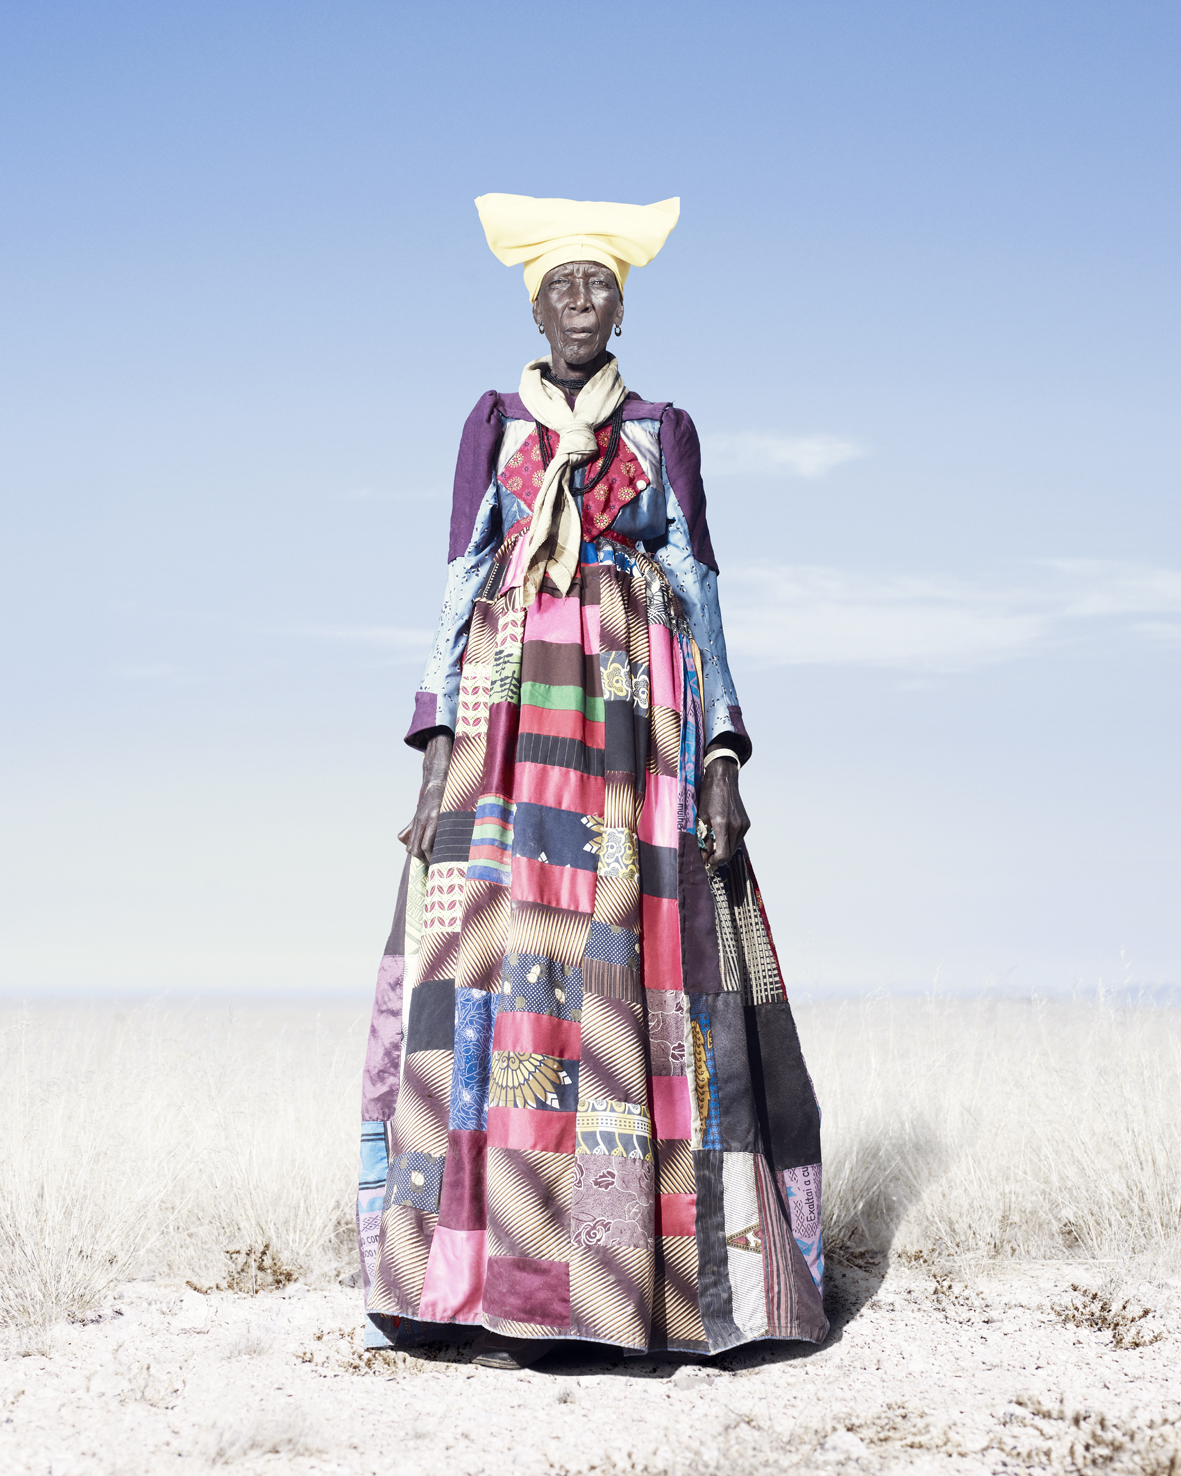 An elderly Herero woman in patchwork dress and pale scarf. As Herero women get older, the 'horns' of their headdresses get smaller. According to some accounts, this is to symbolize their loss of fertility.